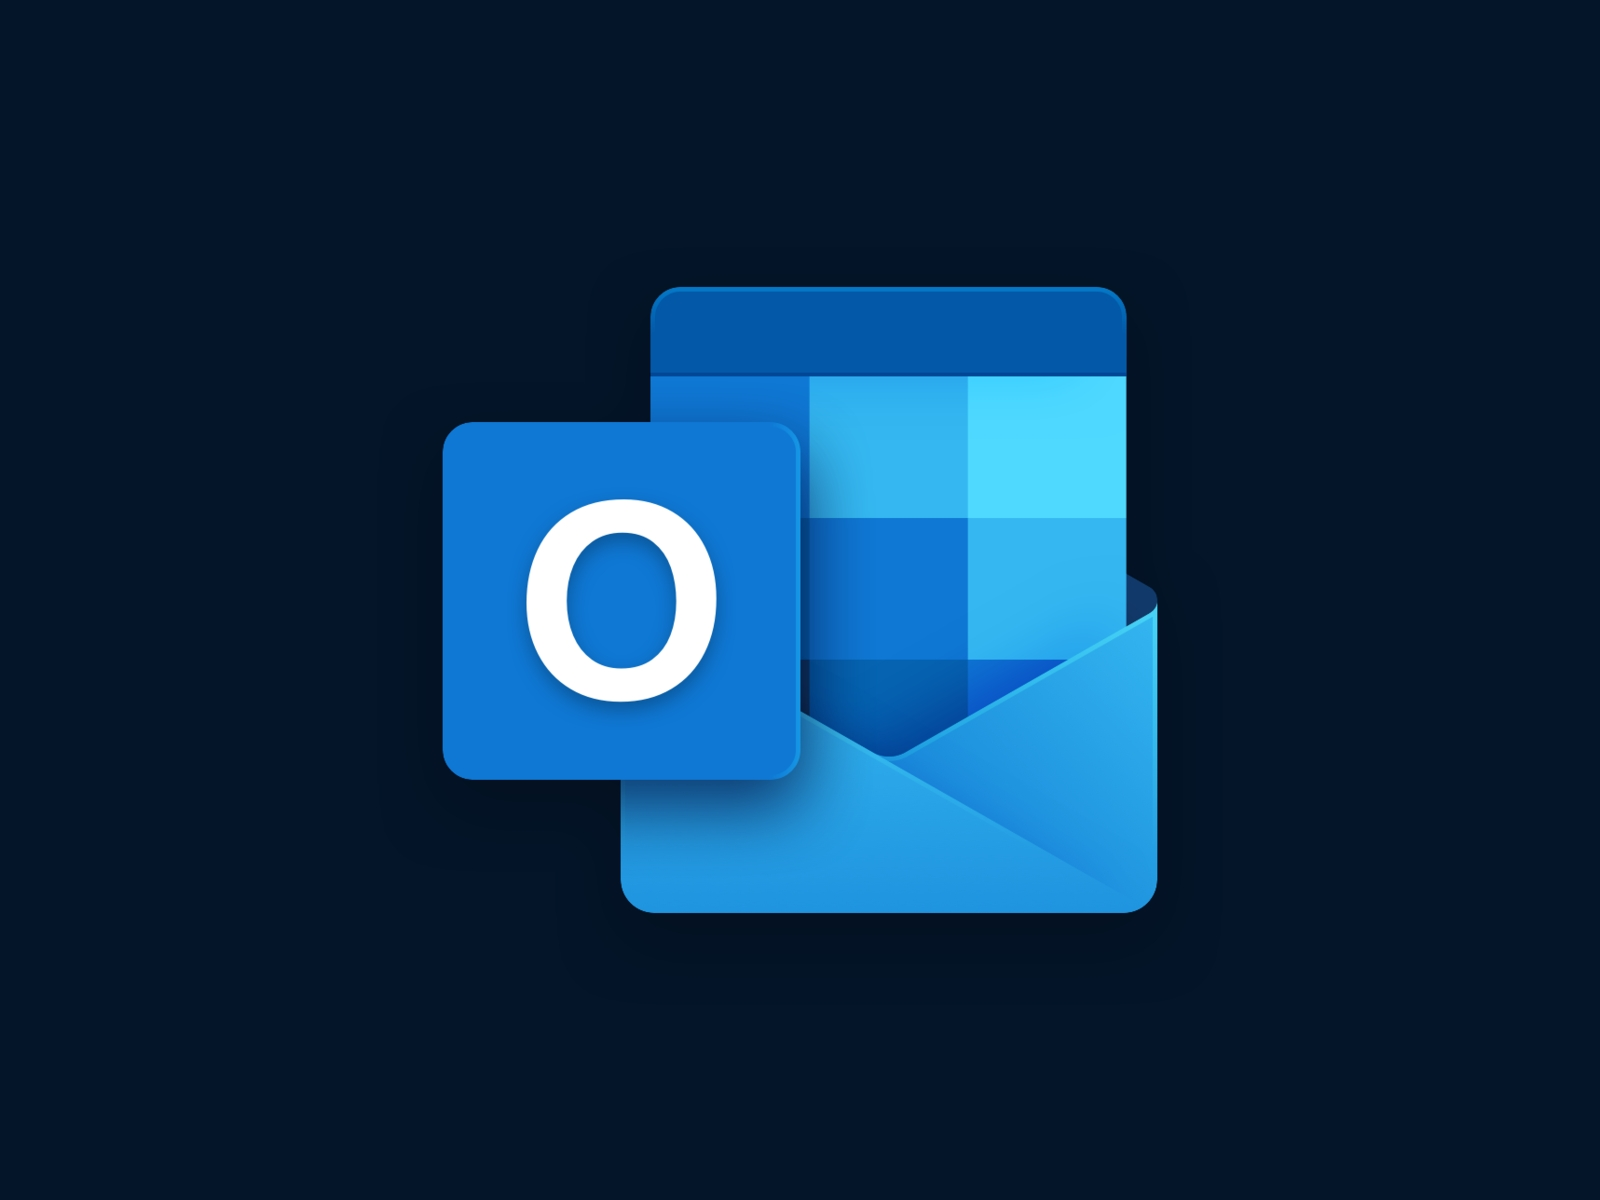 Outlook | App Icon Design, Icon Design, Icon